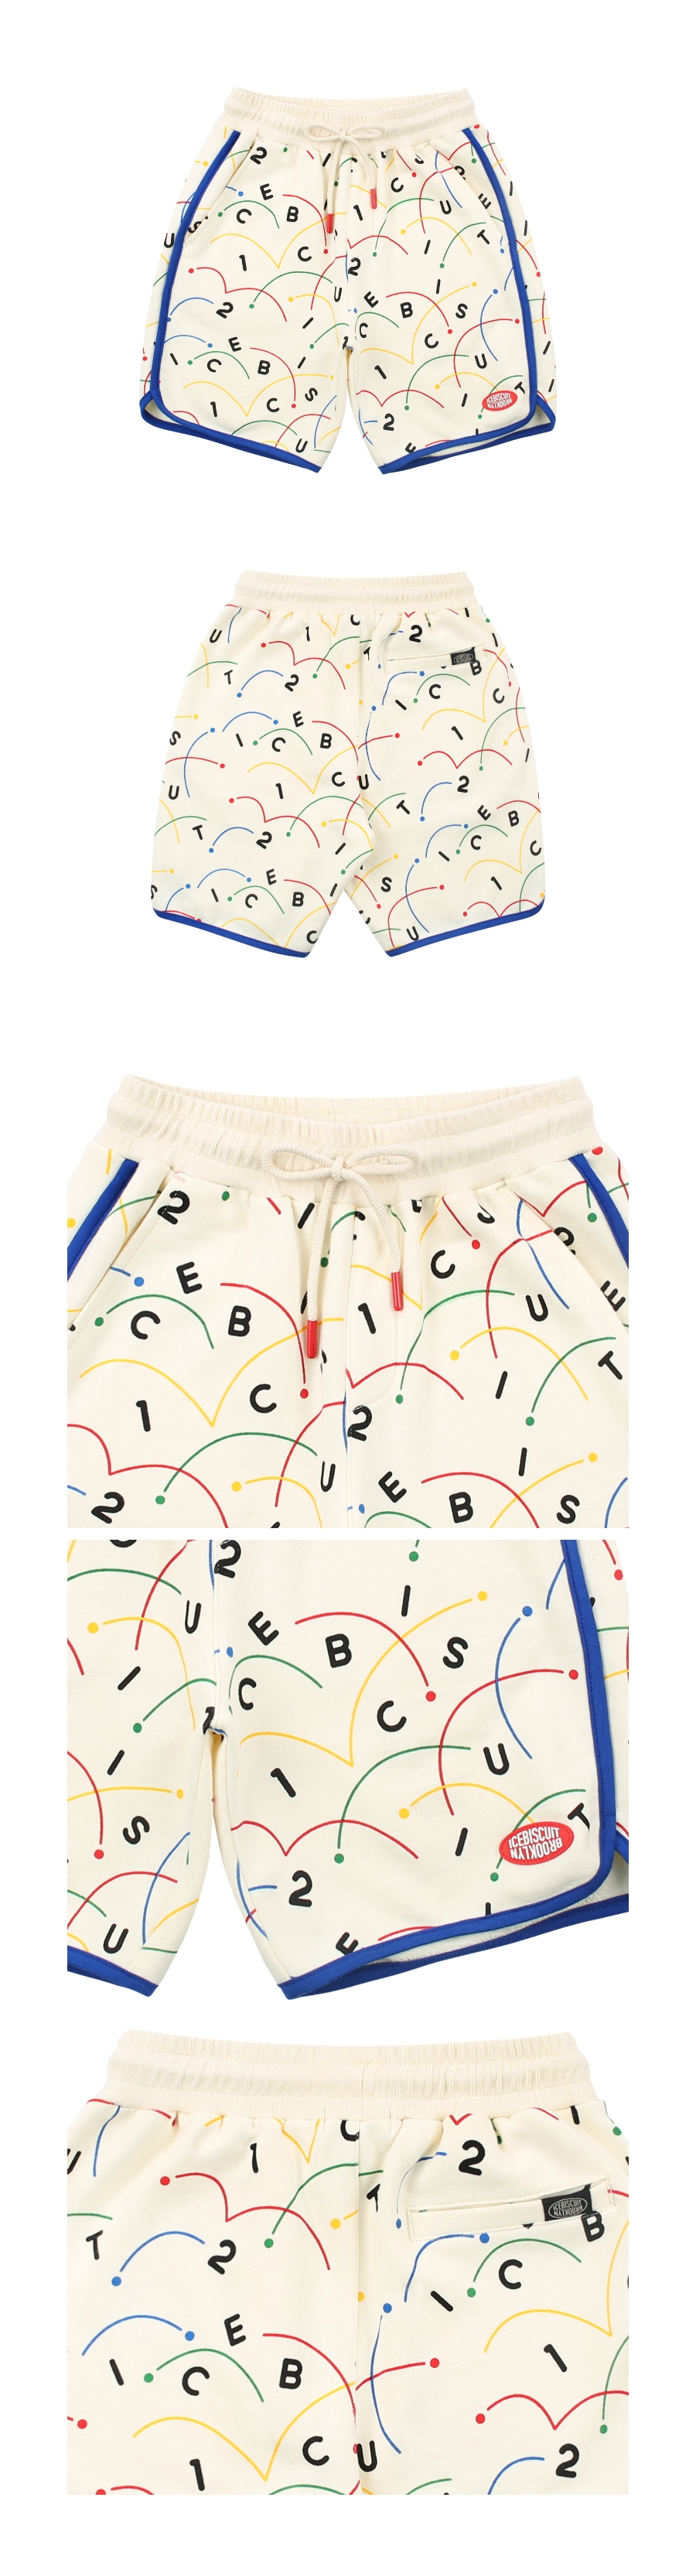 Colorful tennis-printed sweat shorts 상세 이미지